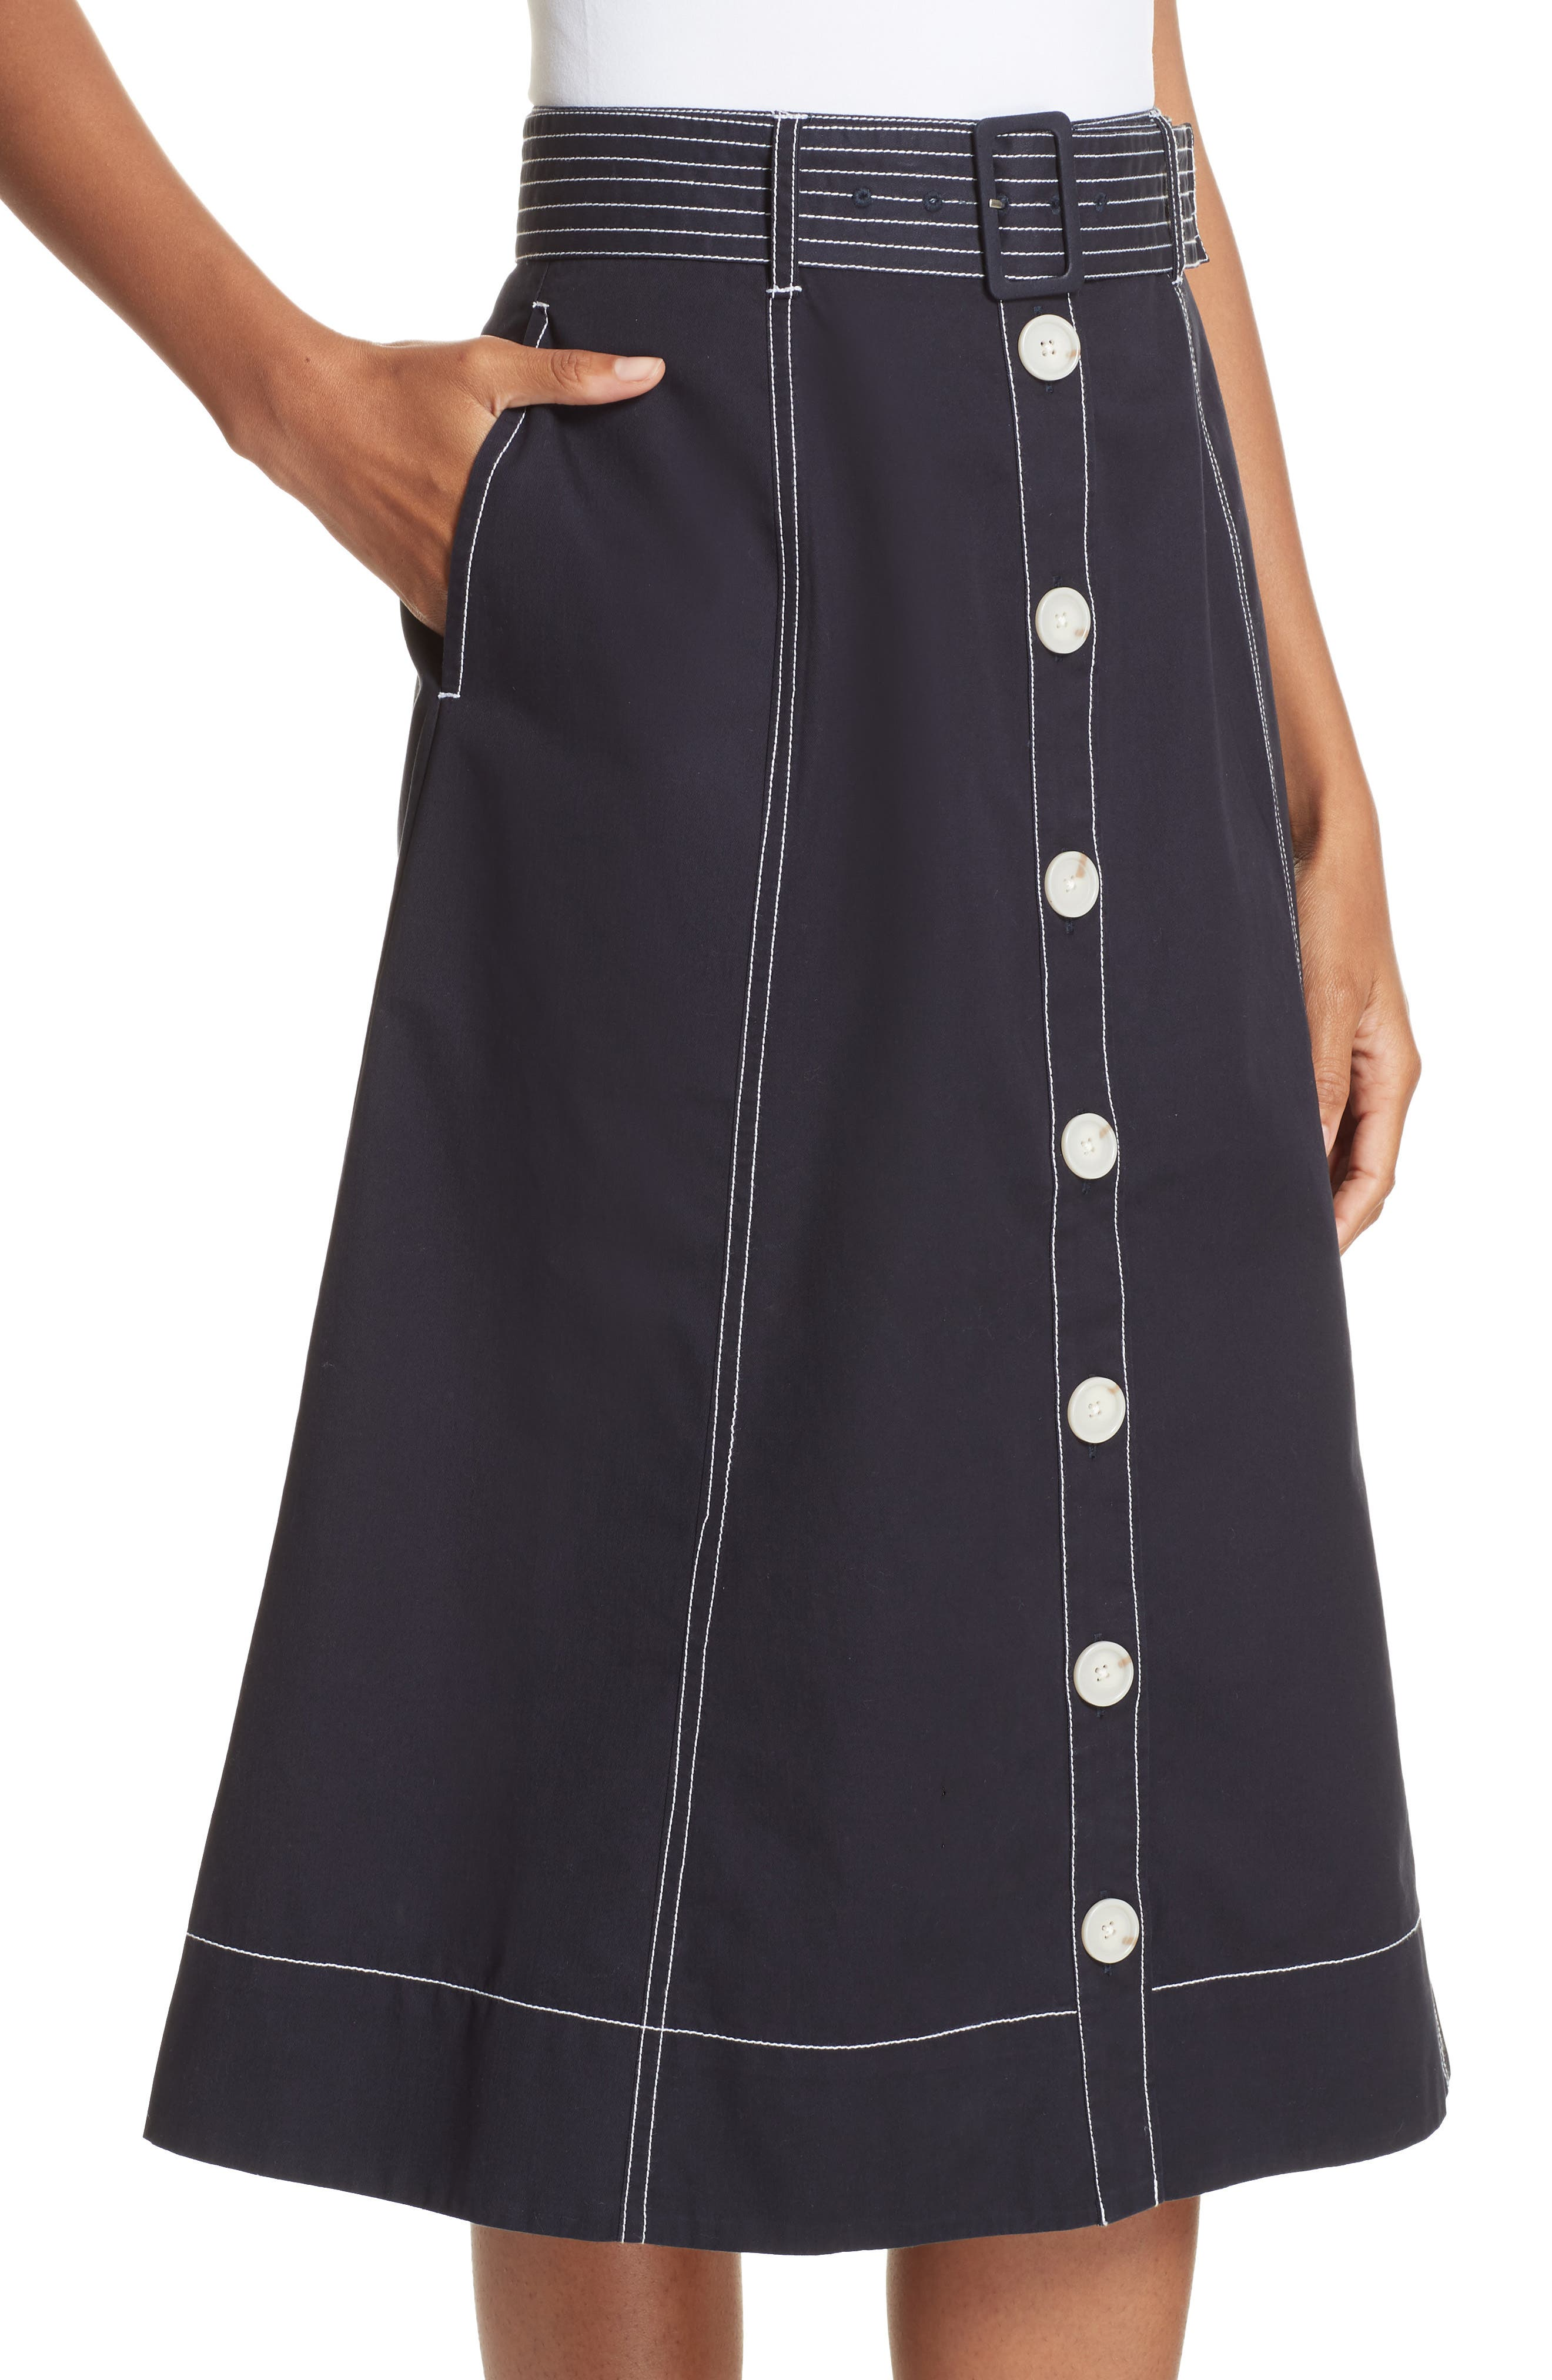 Mayaly Belted Cotton Skirt,                             Alternate thumbnail 4, color,                             MIDNIGHT